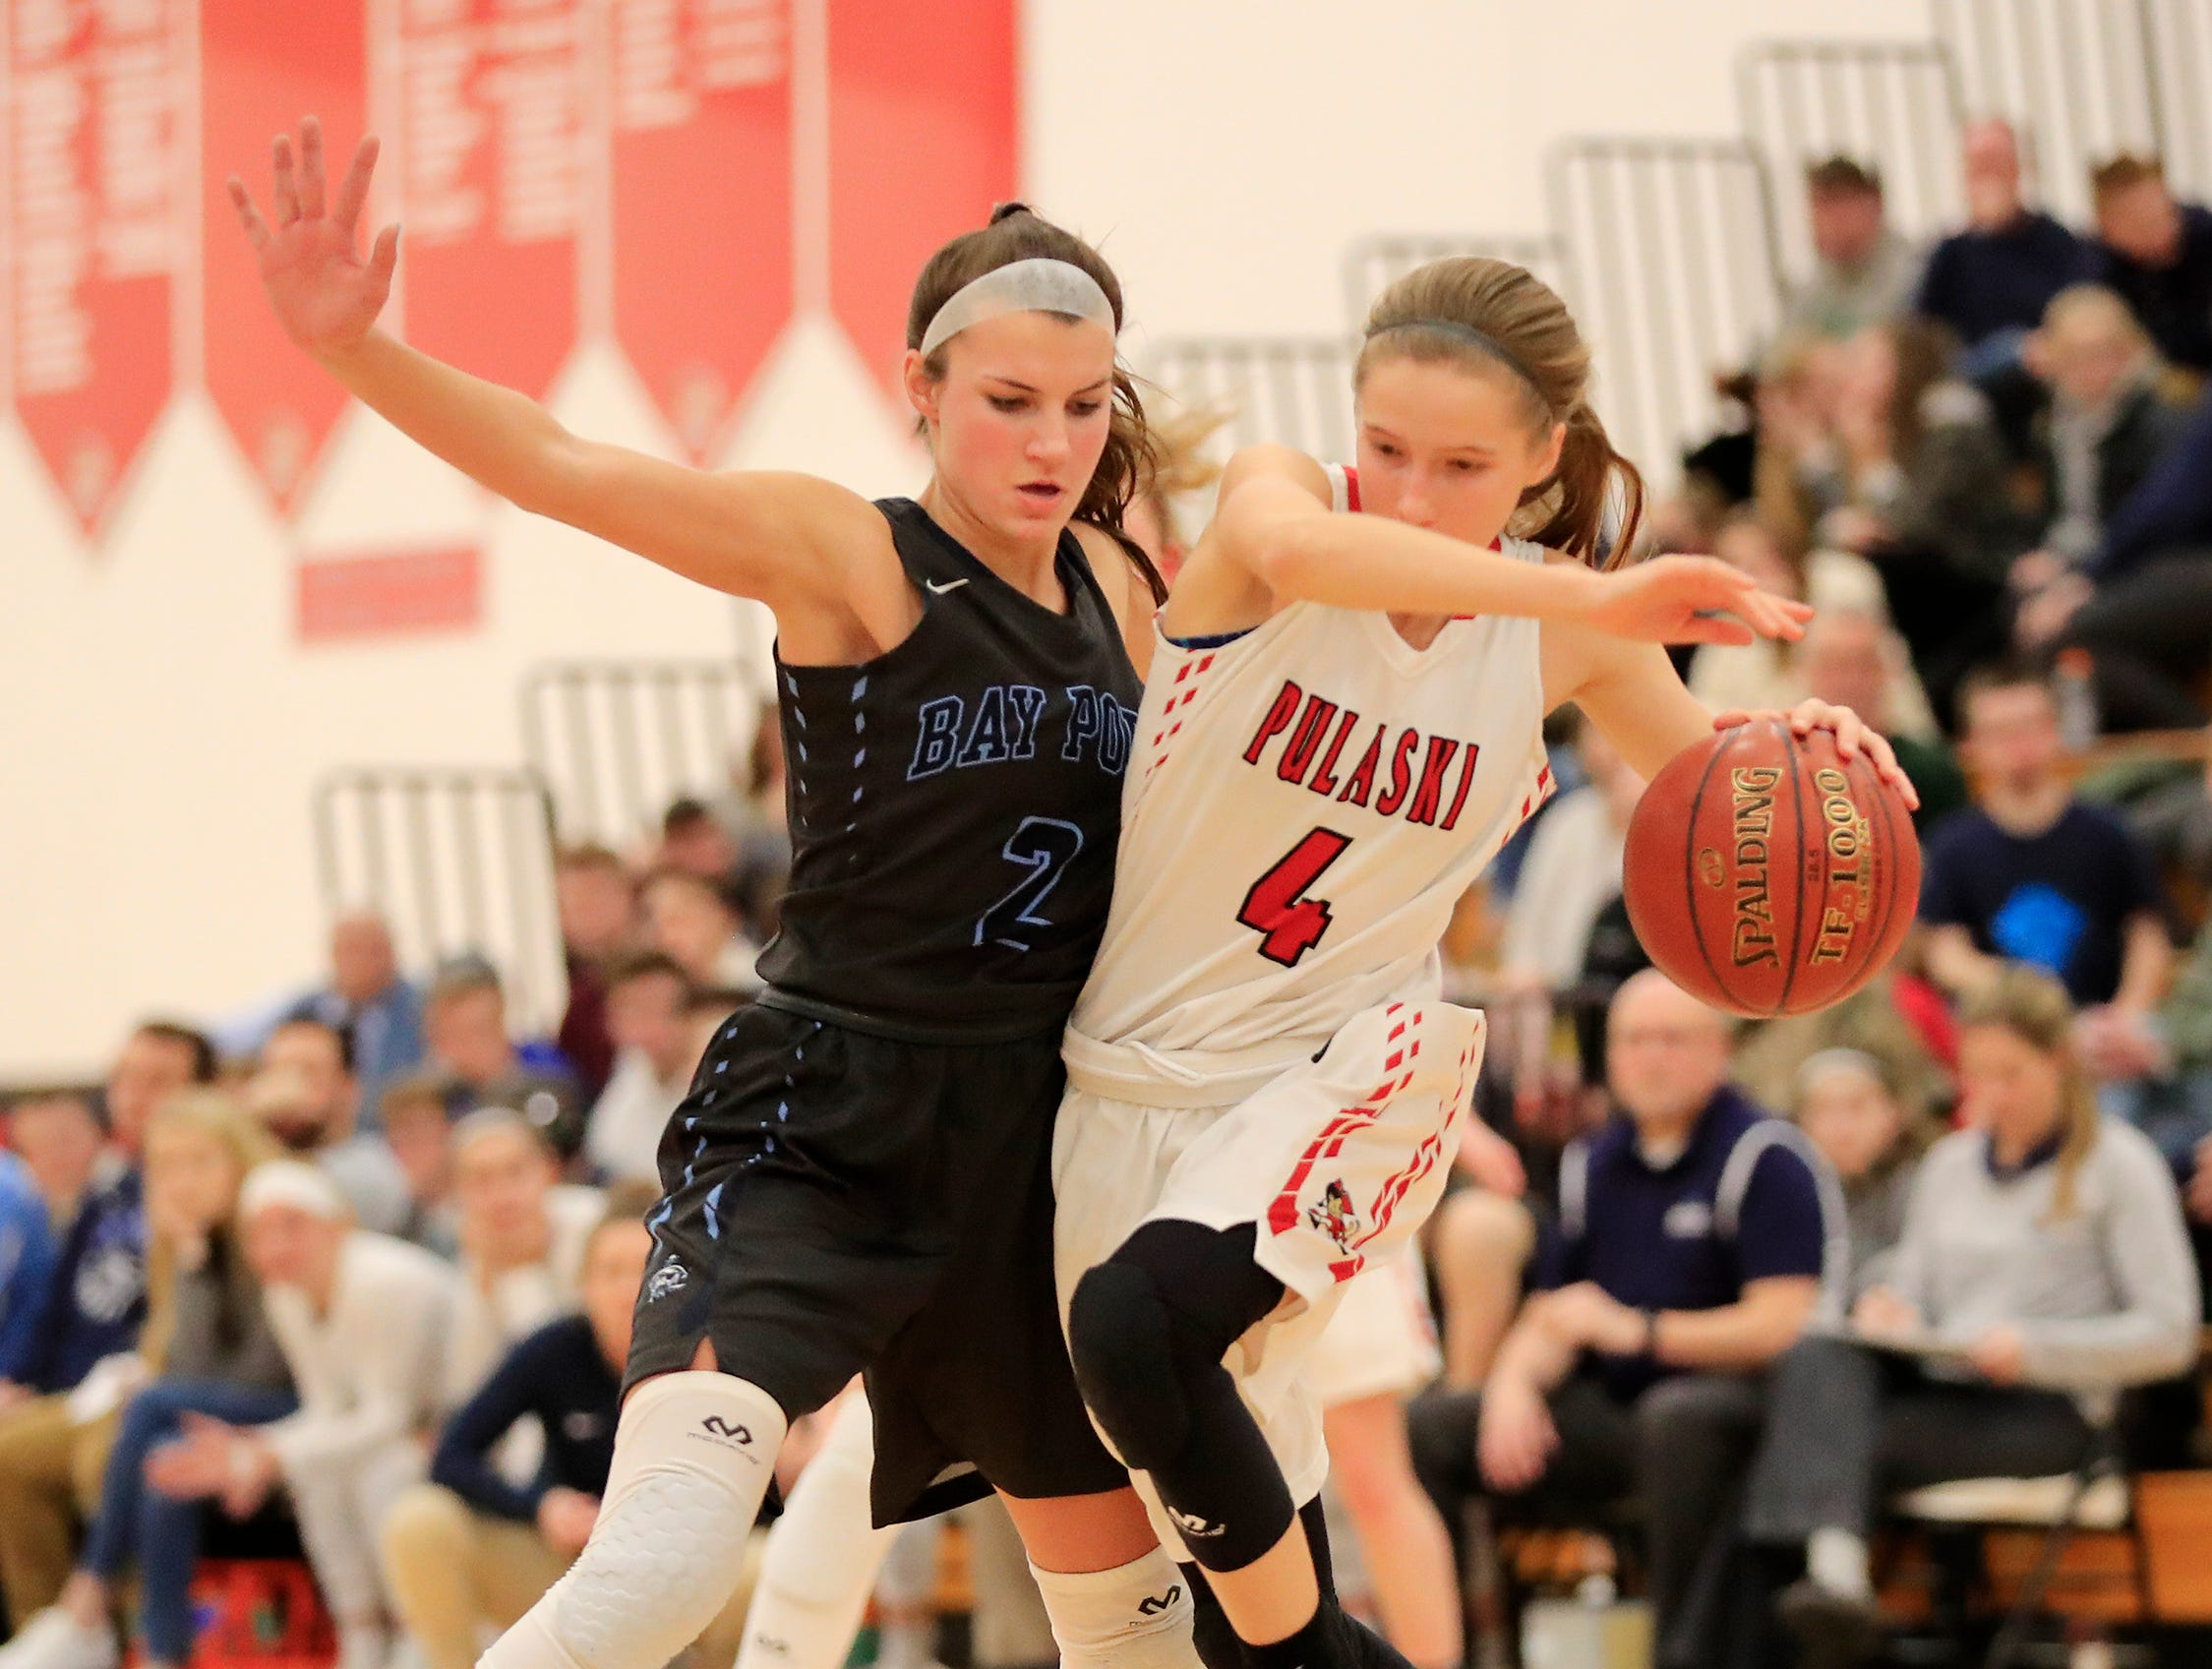 Bay Port's Grace Krause (2) guards Pulaski's Sheridan Flauger (4) in a girls basketball game at Pulaski high school on Friday, January 4, 2019 in Pulaski, Wis.